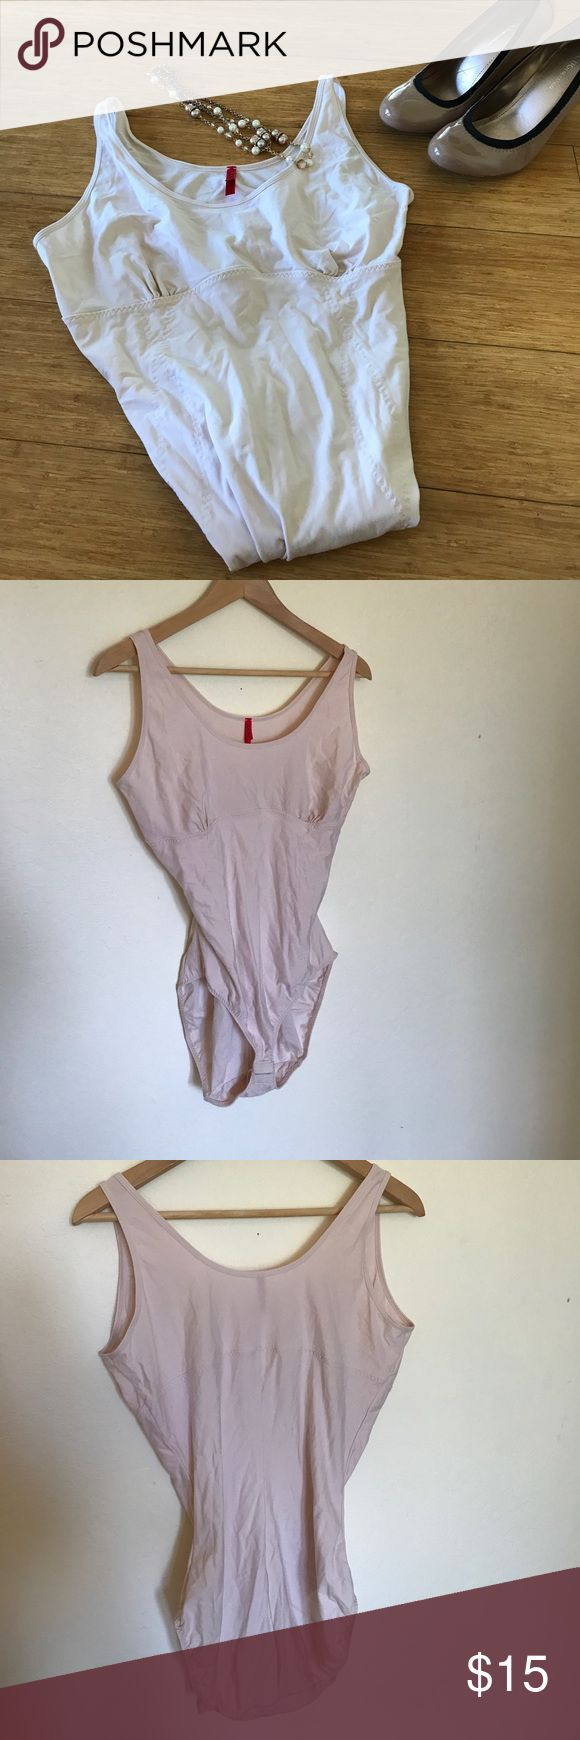 "Spanx Nude Blush Shapewear BodySuit sz 3X Spanx BodySuit Shapewear in Nude/Blush color. Size 3X (approx 18 20 22) Great for under a dress! Made of ""SpoilMe Cotton"".  EUC. Pet Friendly Home. Bundle & Save with some of my other plus size listings! 14 16 18 20 0X 1X 2X  SPANX Intimates & Sleepwear Shapewear"